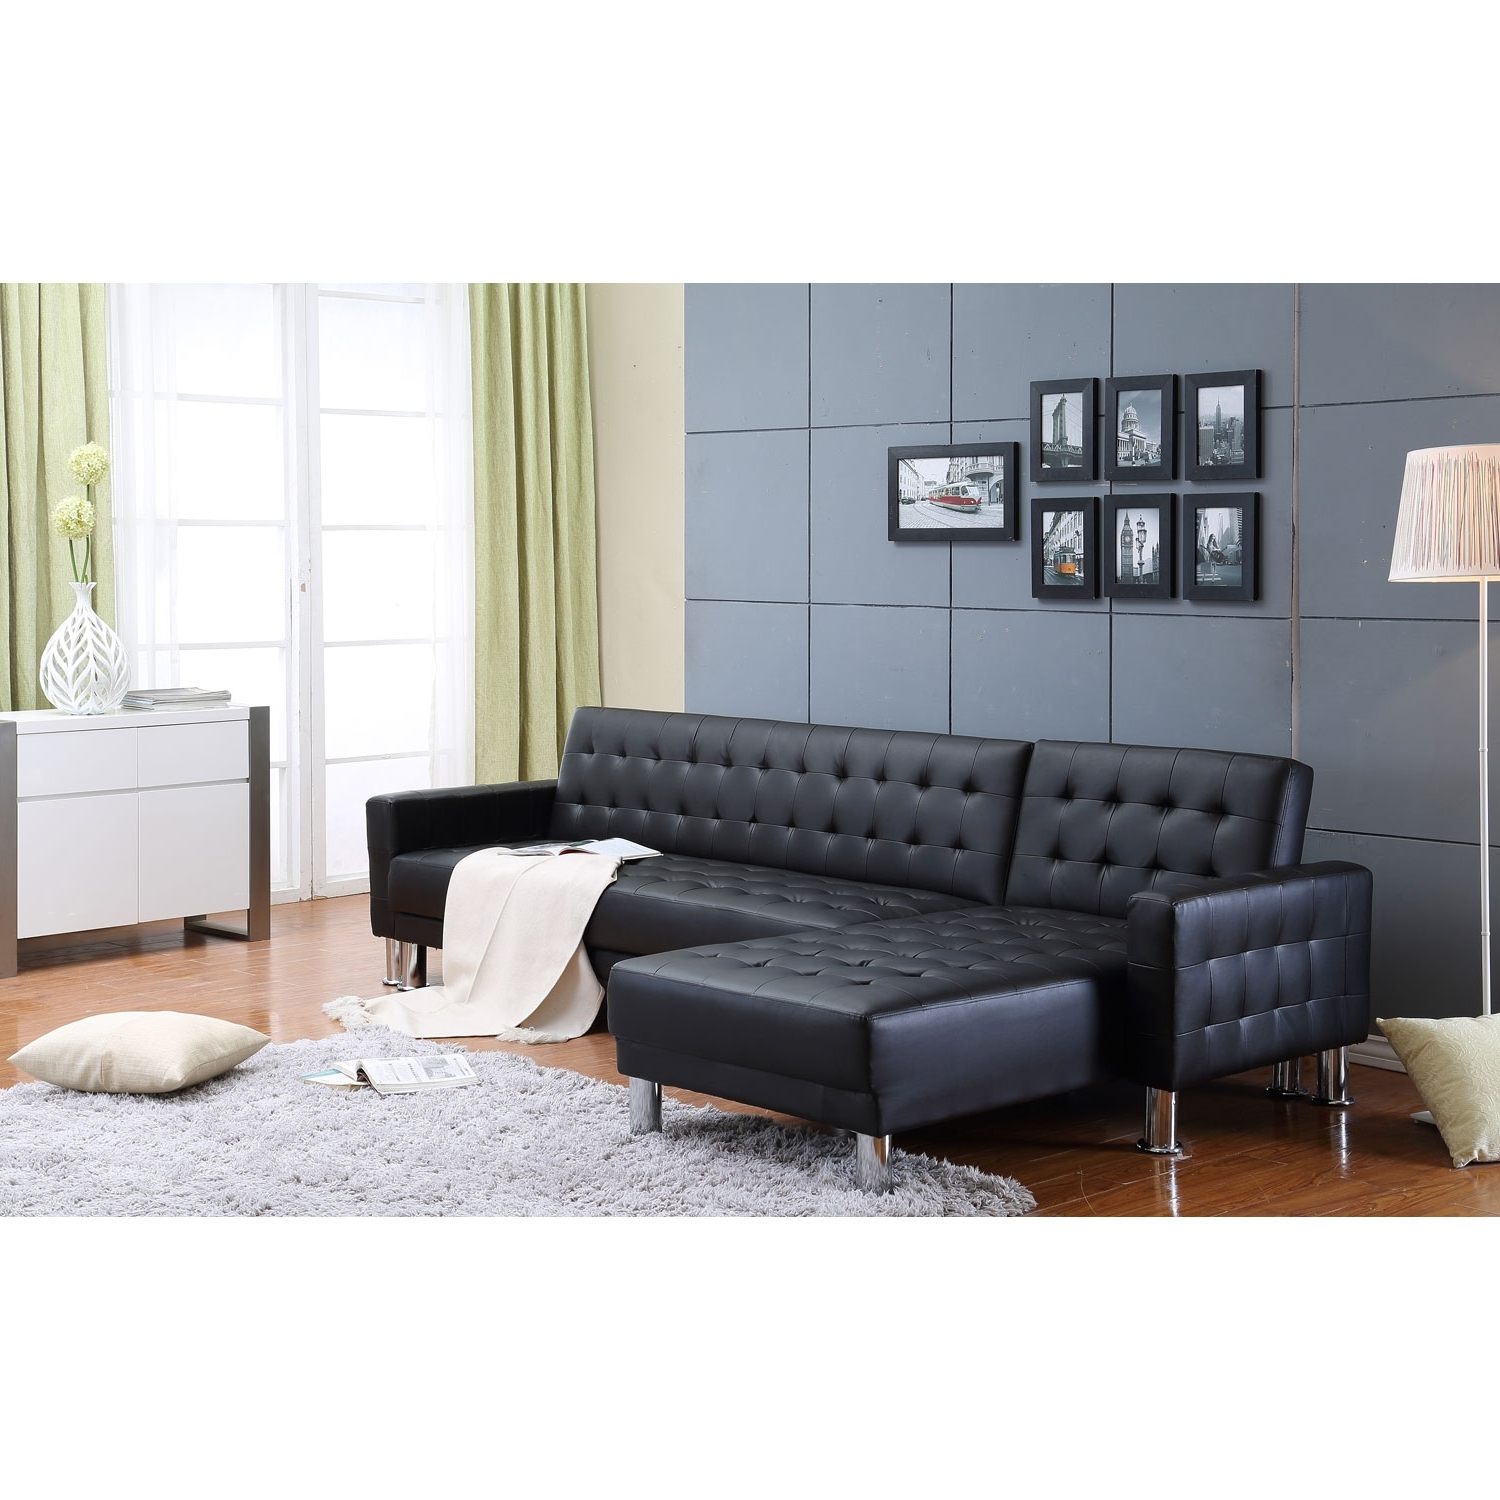 Favorite Sectional Sofah Storage Chaise Sleeper Leather Ikea Photos Hd For Kijiji Edmonton Sectional Sofas (View 3 of 15)